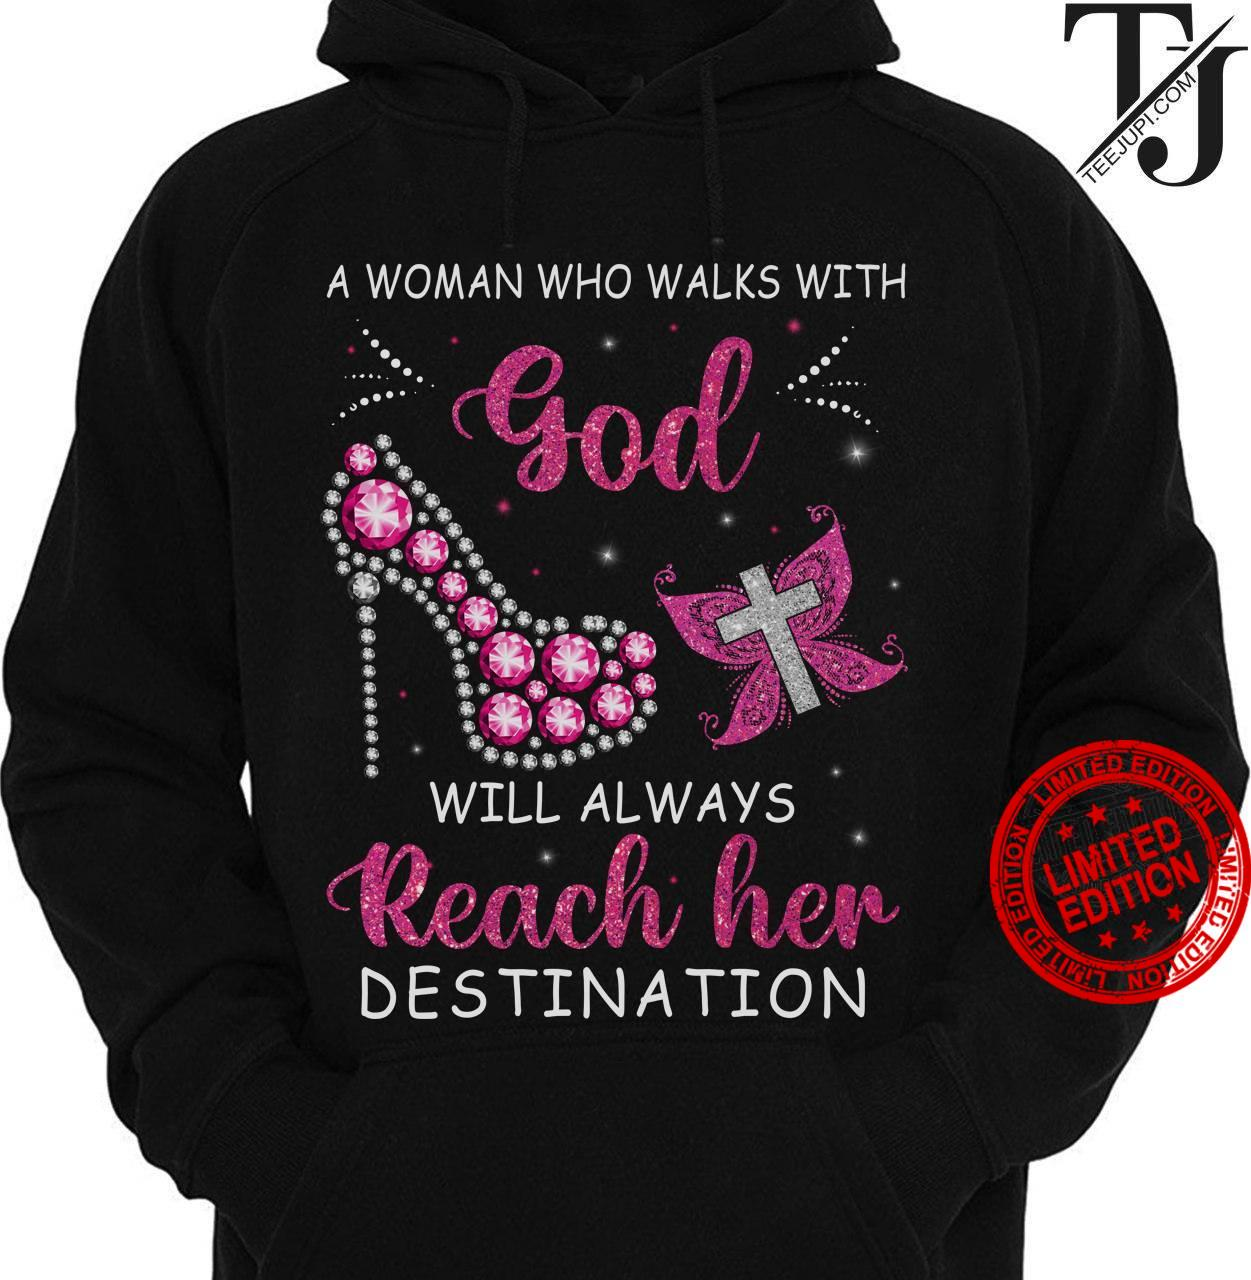 A Woman Who Walks With God Will Always Reach Her Destination Shirt